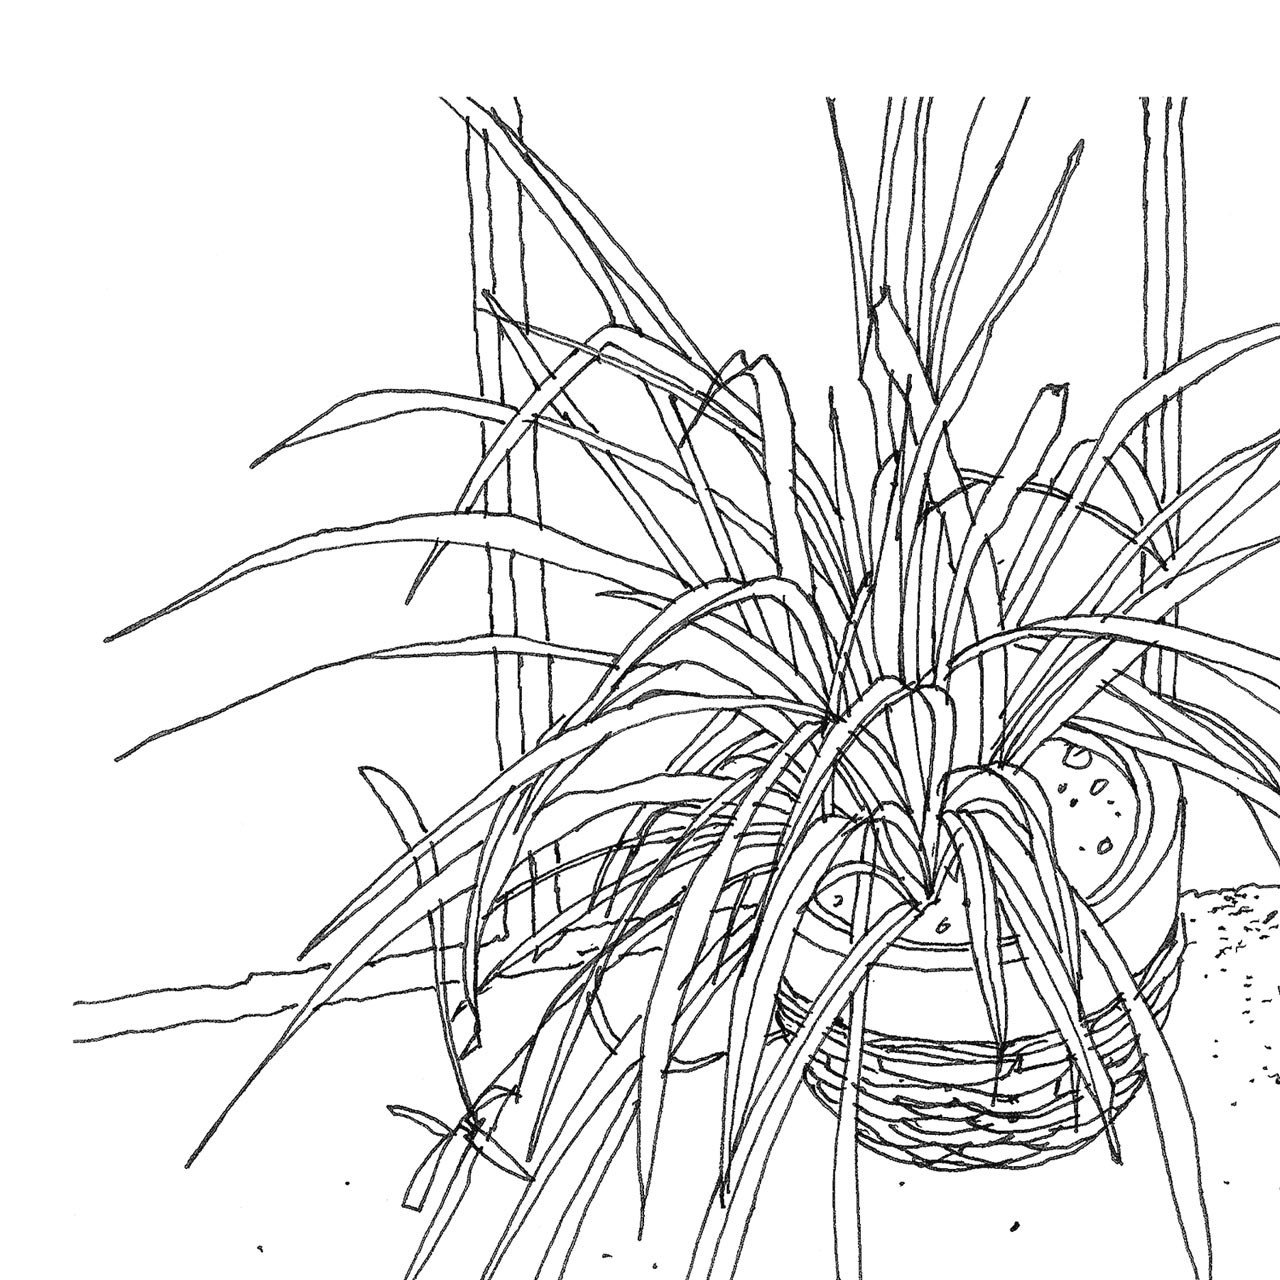 Close-up of 'Spider Plant' Art Print (ink drawing by David Cobley) from The Printed Home